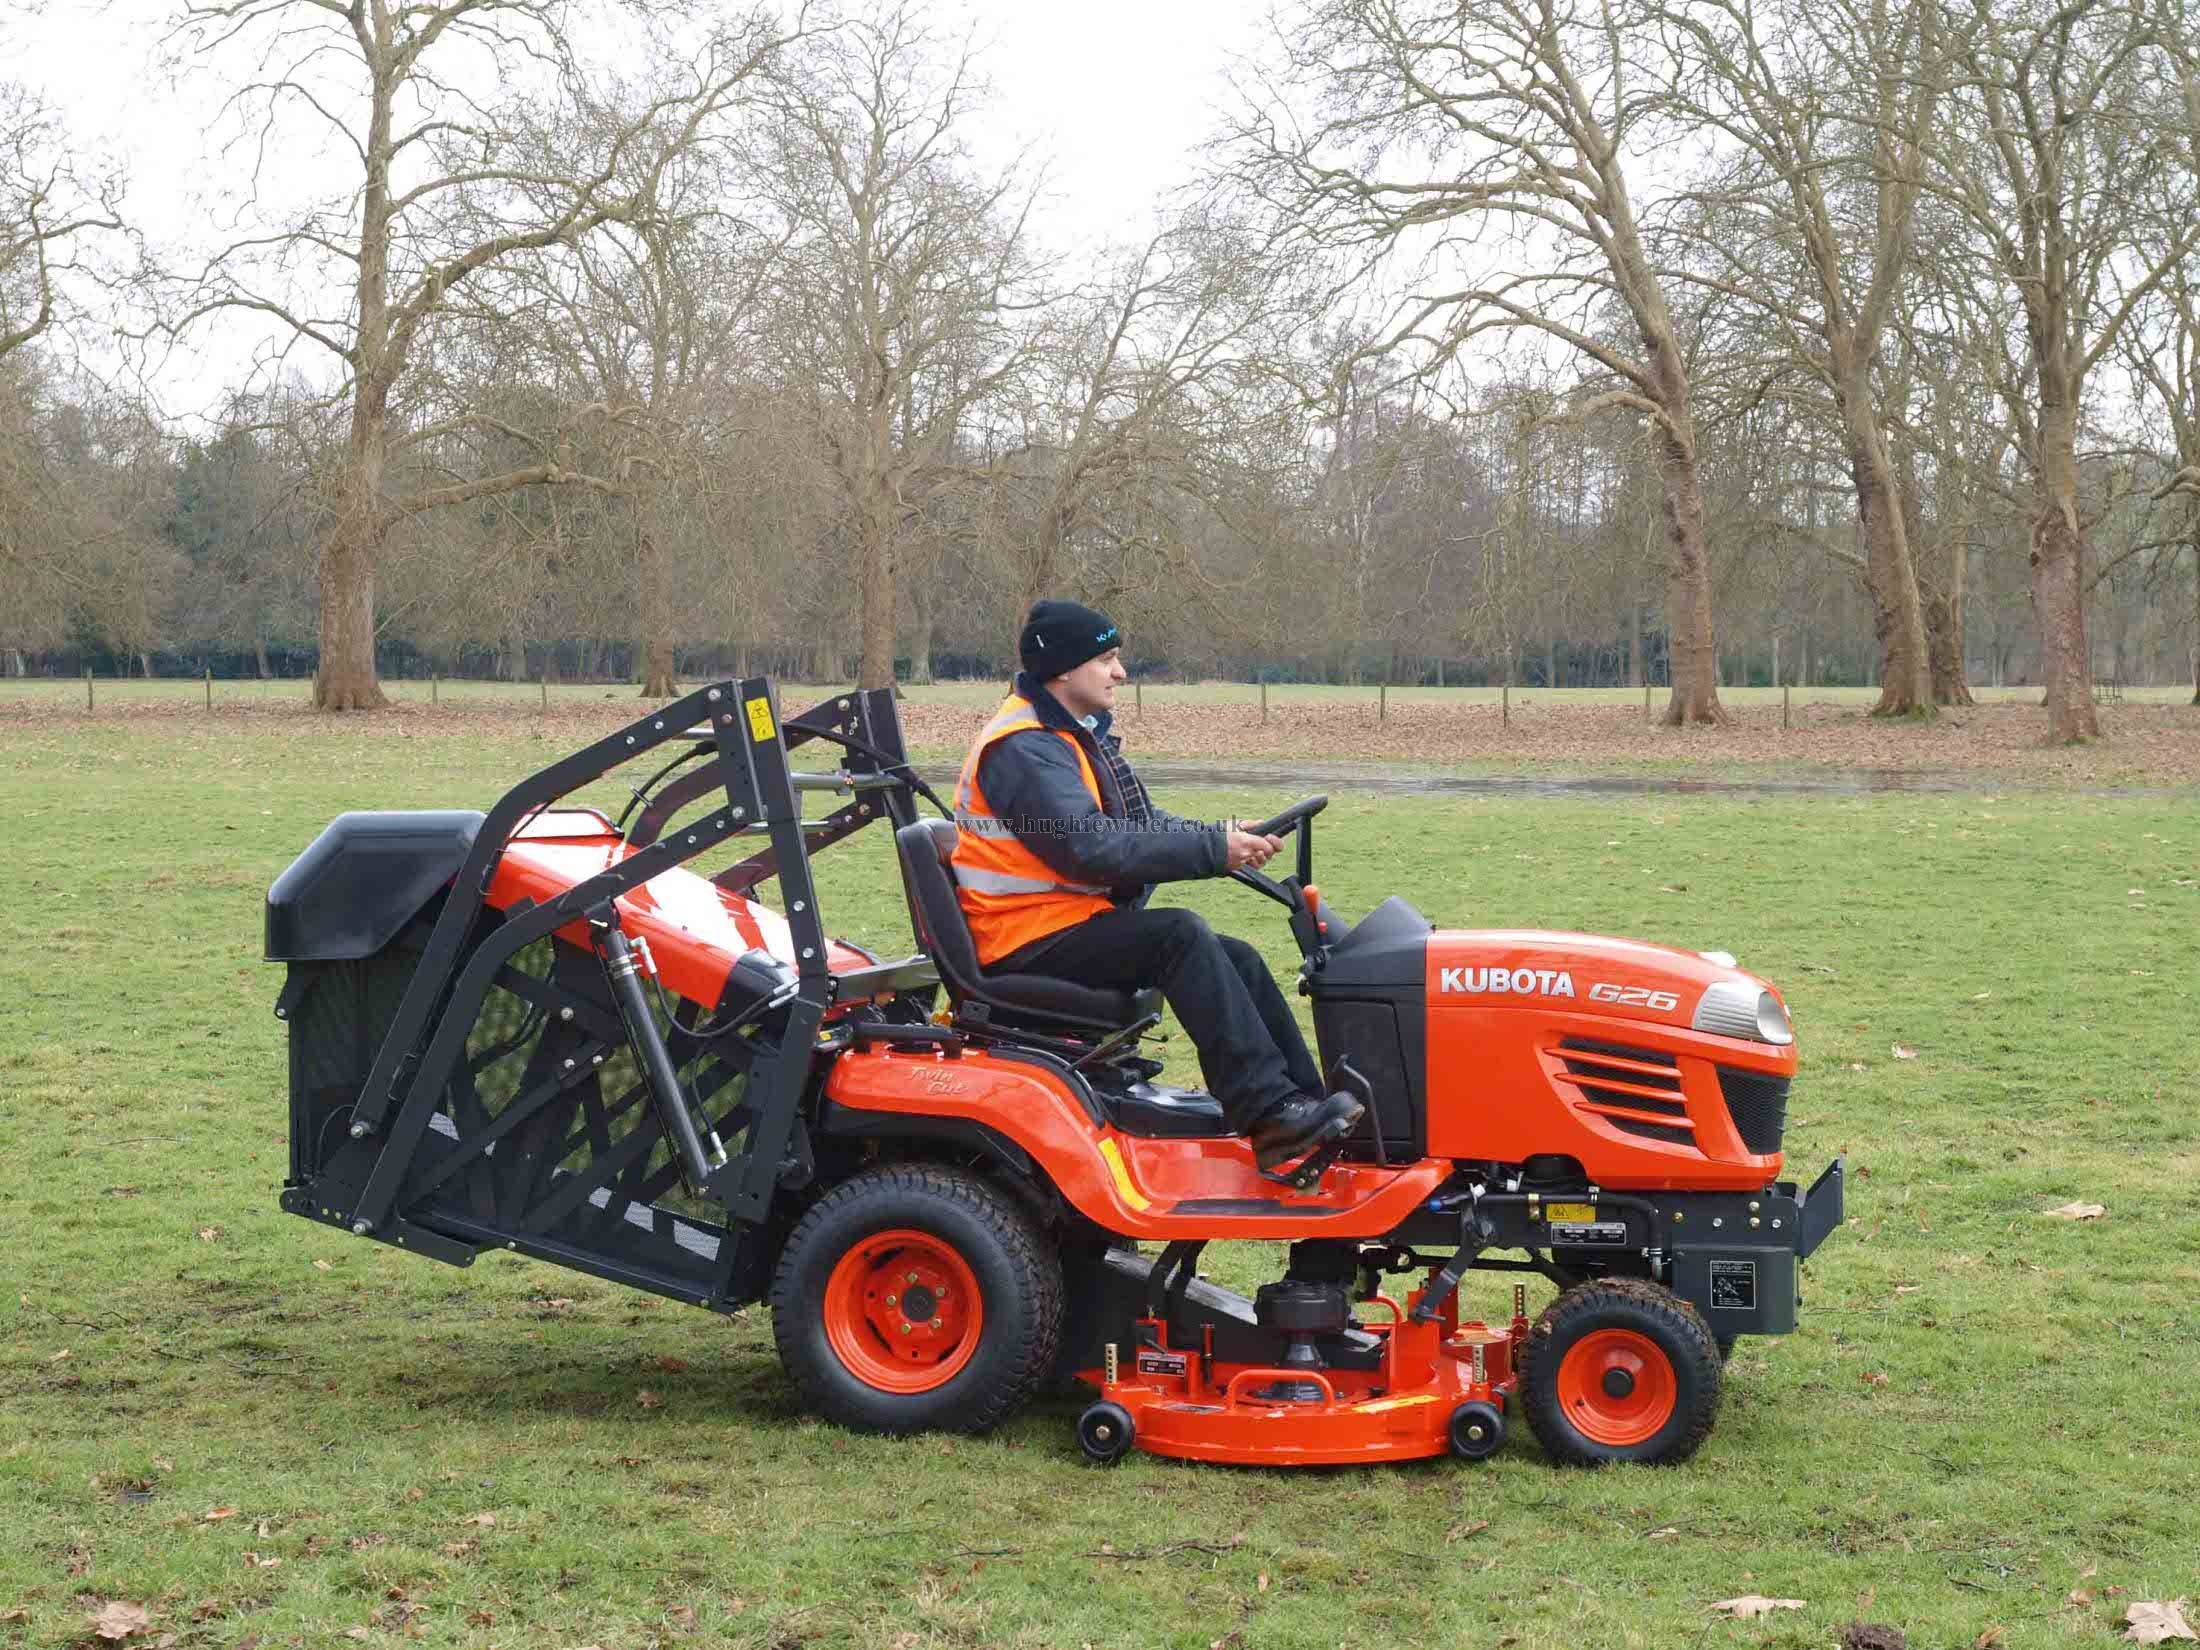 ... the G26 II, with its 25.5HP Kubota 3 cylinder ETVCS water-cooled diesel  engine, offers exceptional power and efficiency for day long mowing  operations.